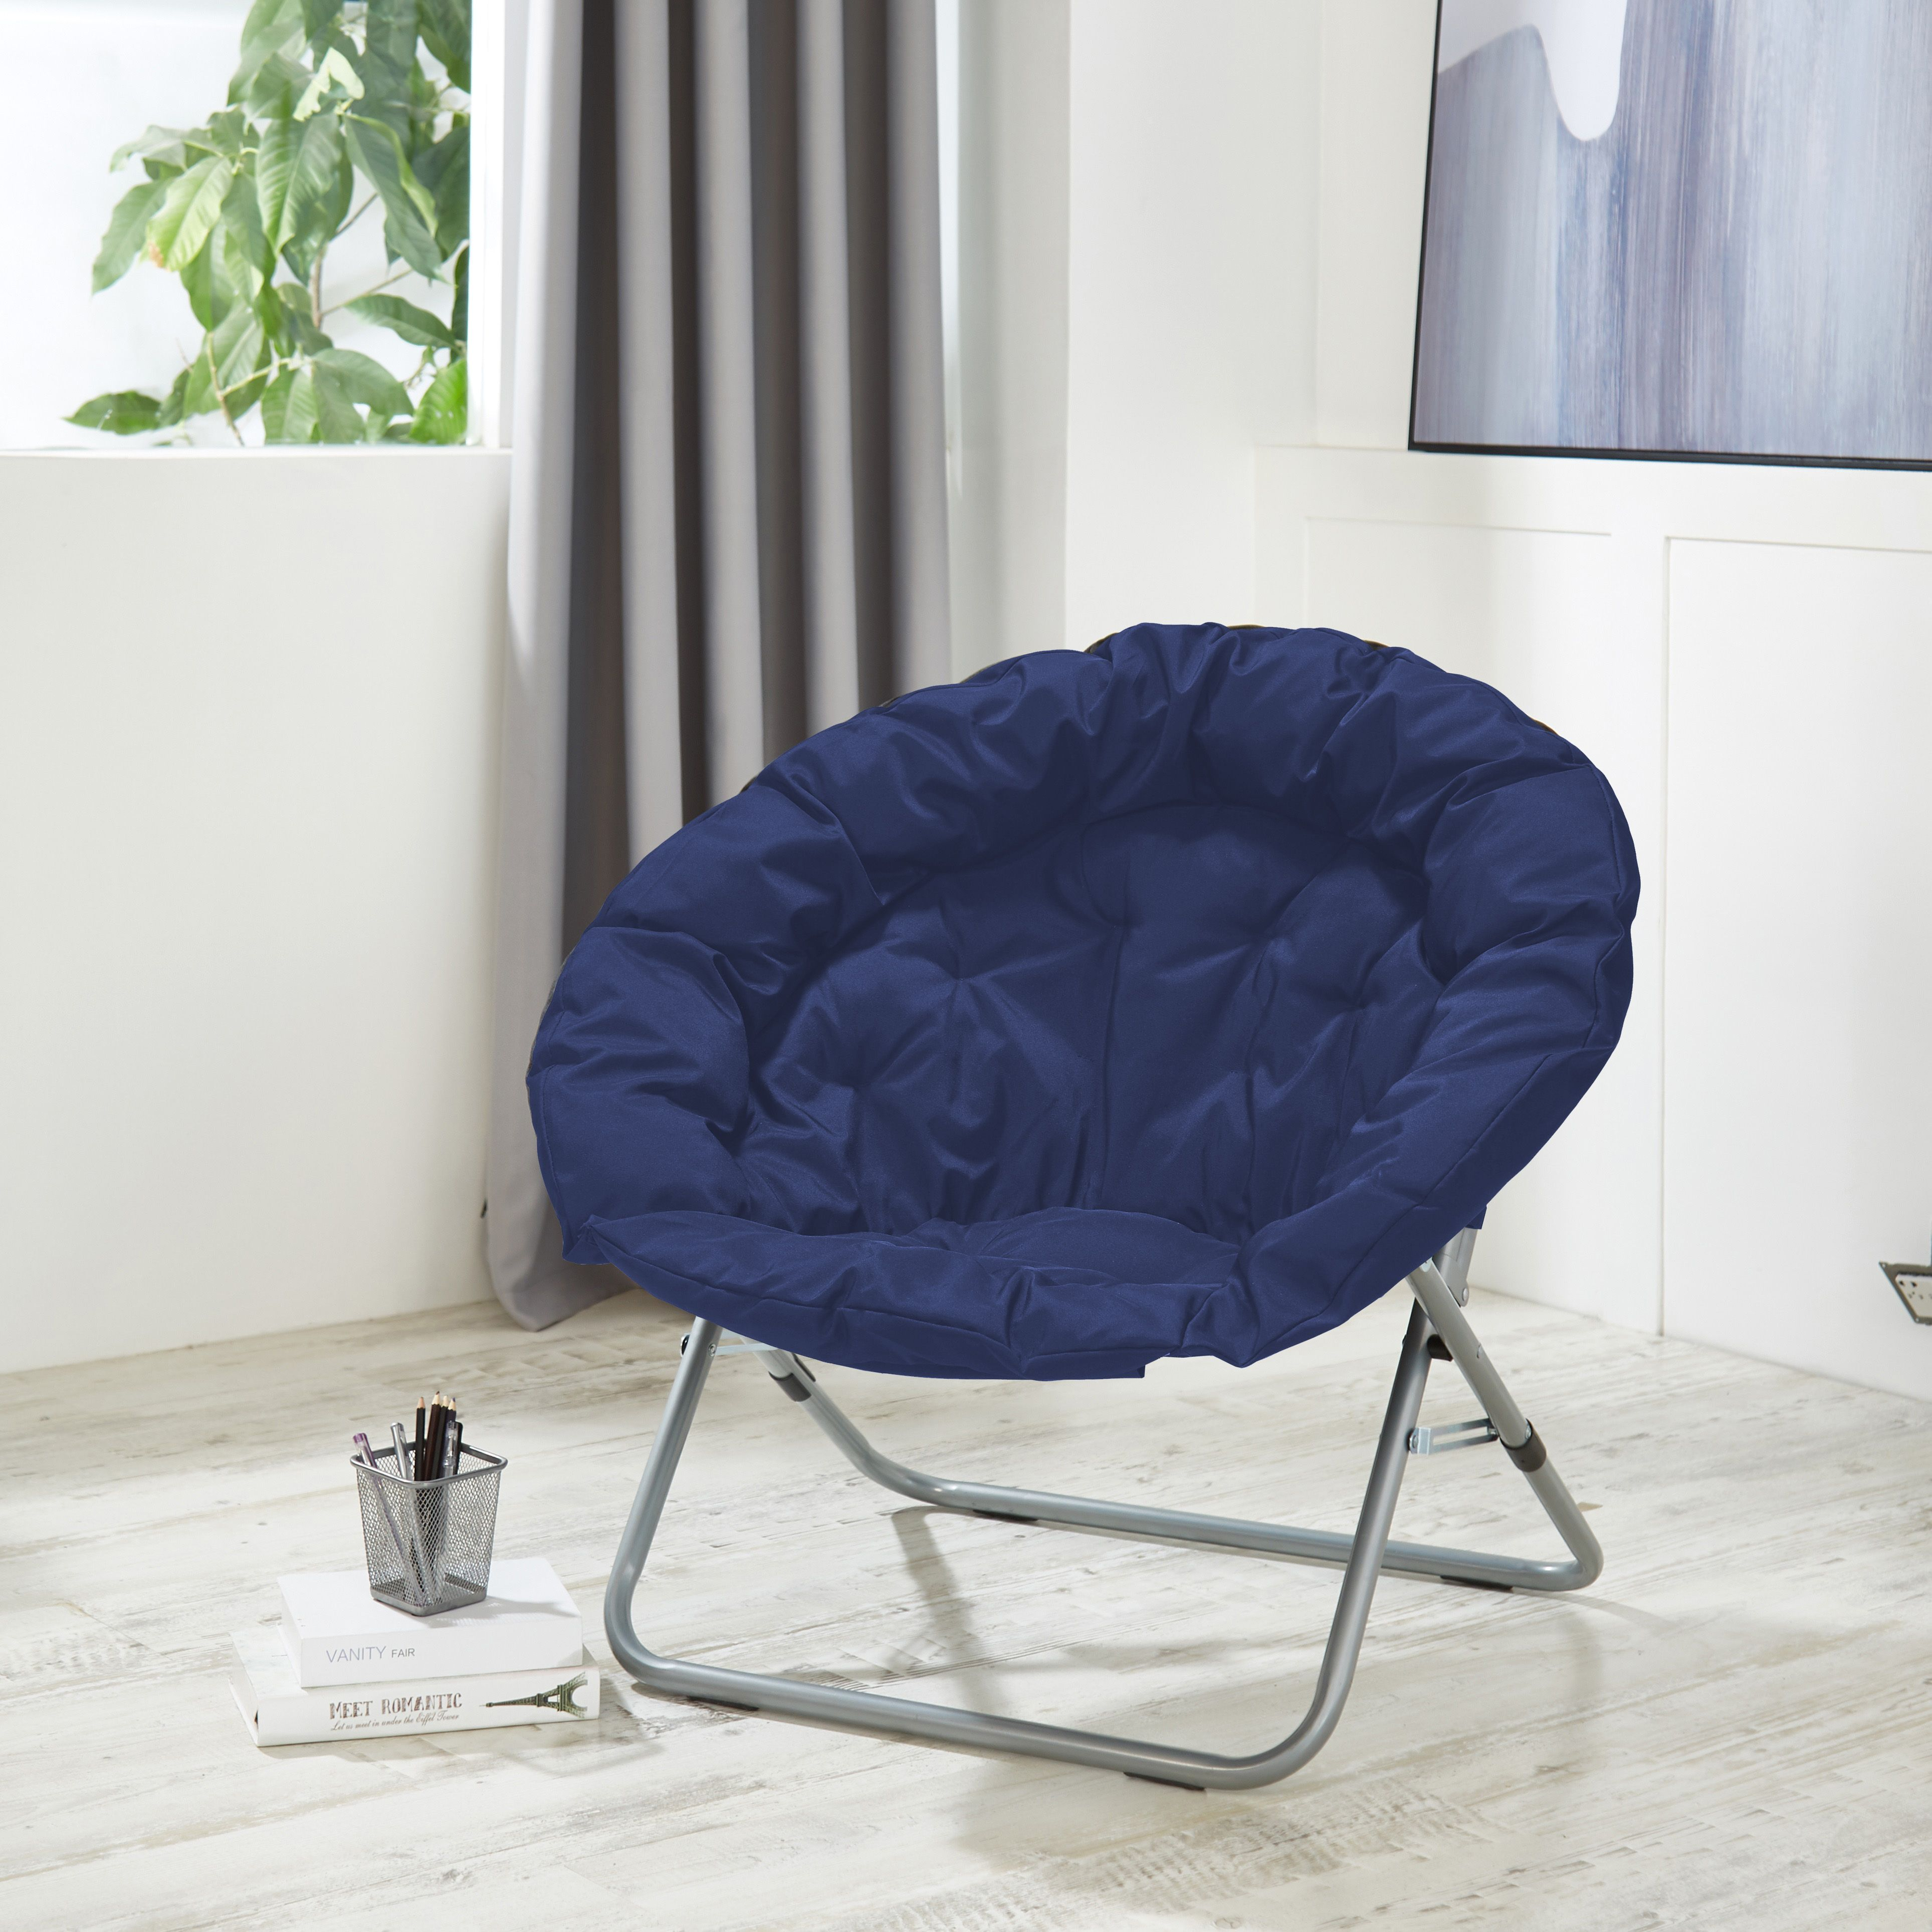 Home With Images Oversized Chair Living Room Moon Chair